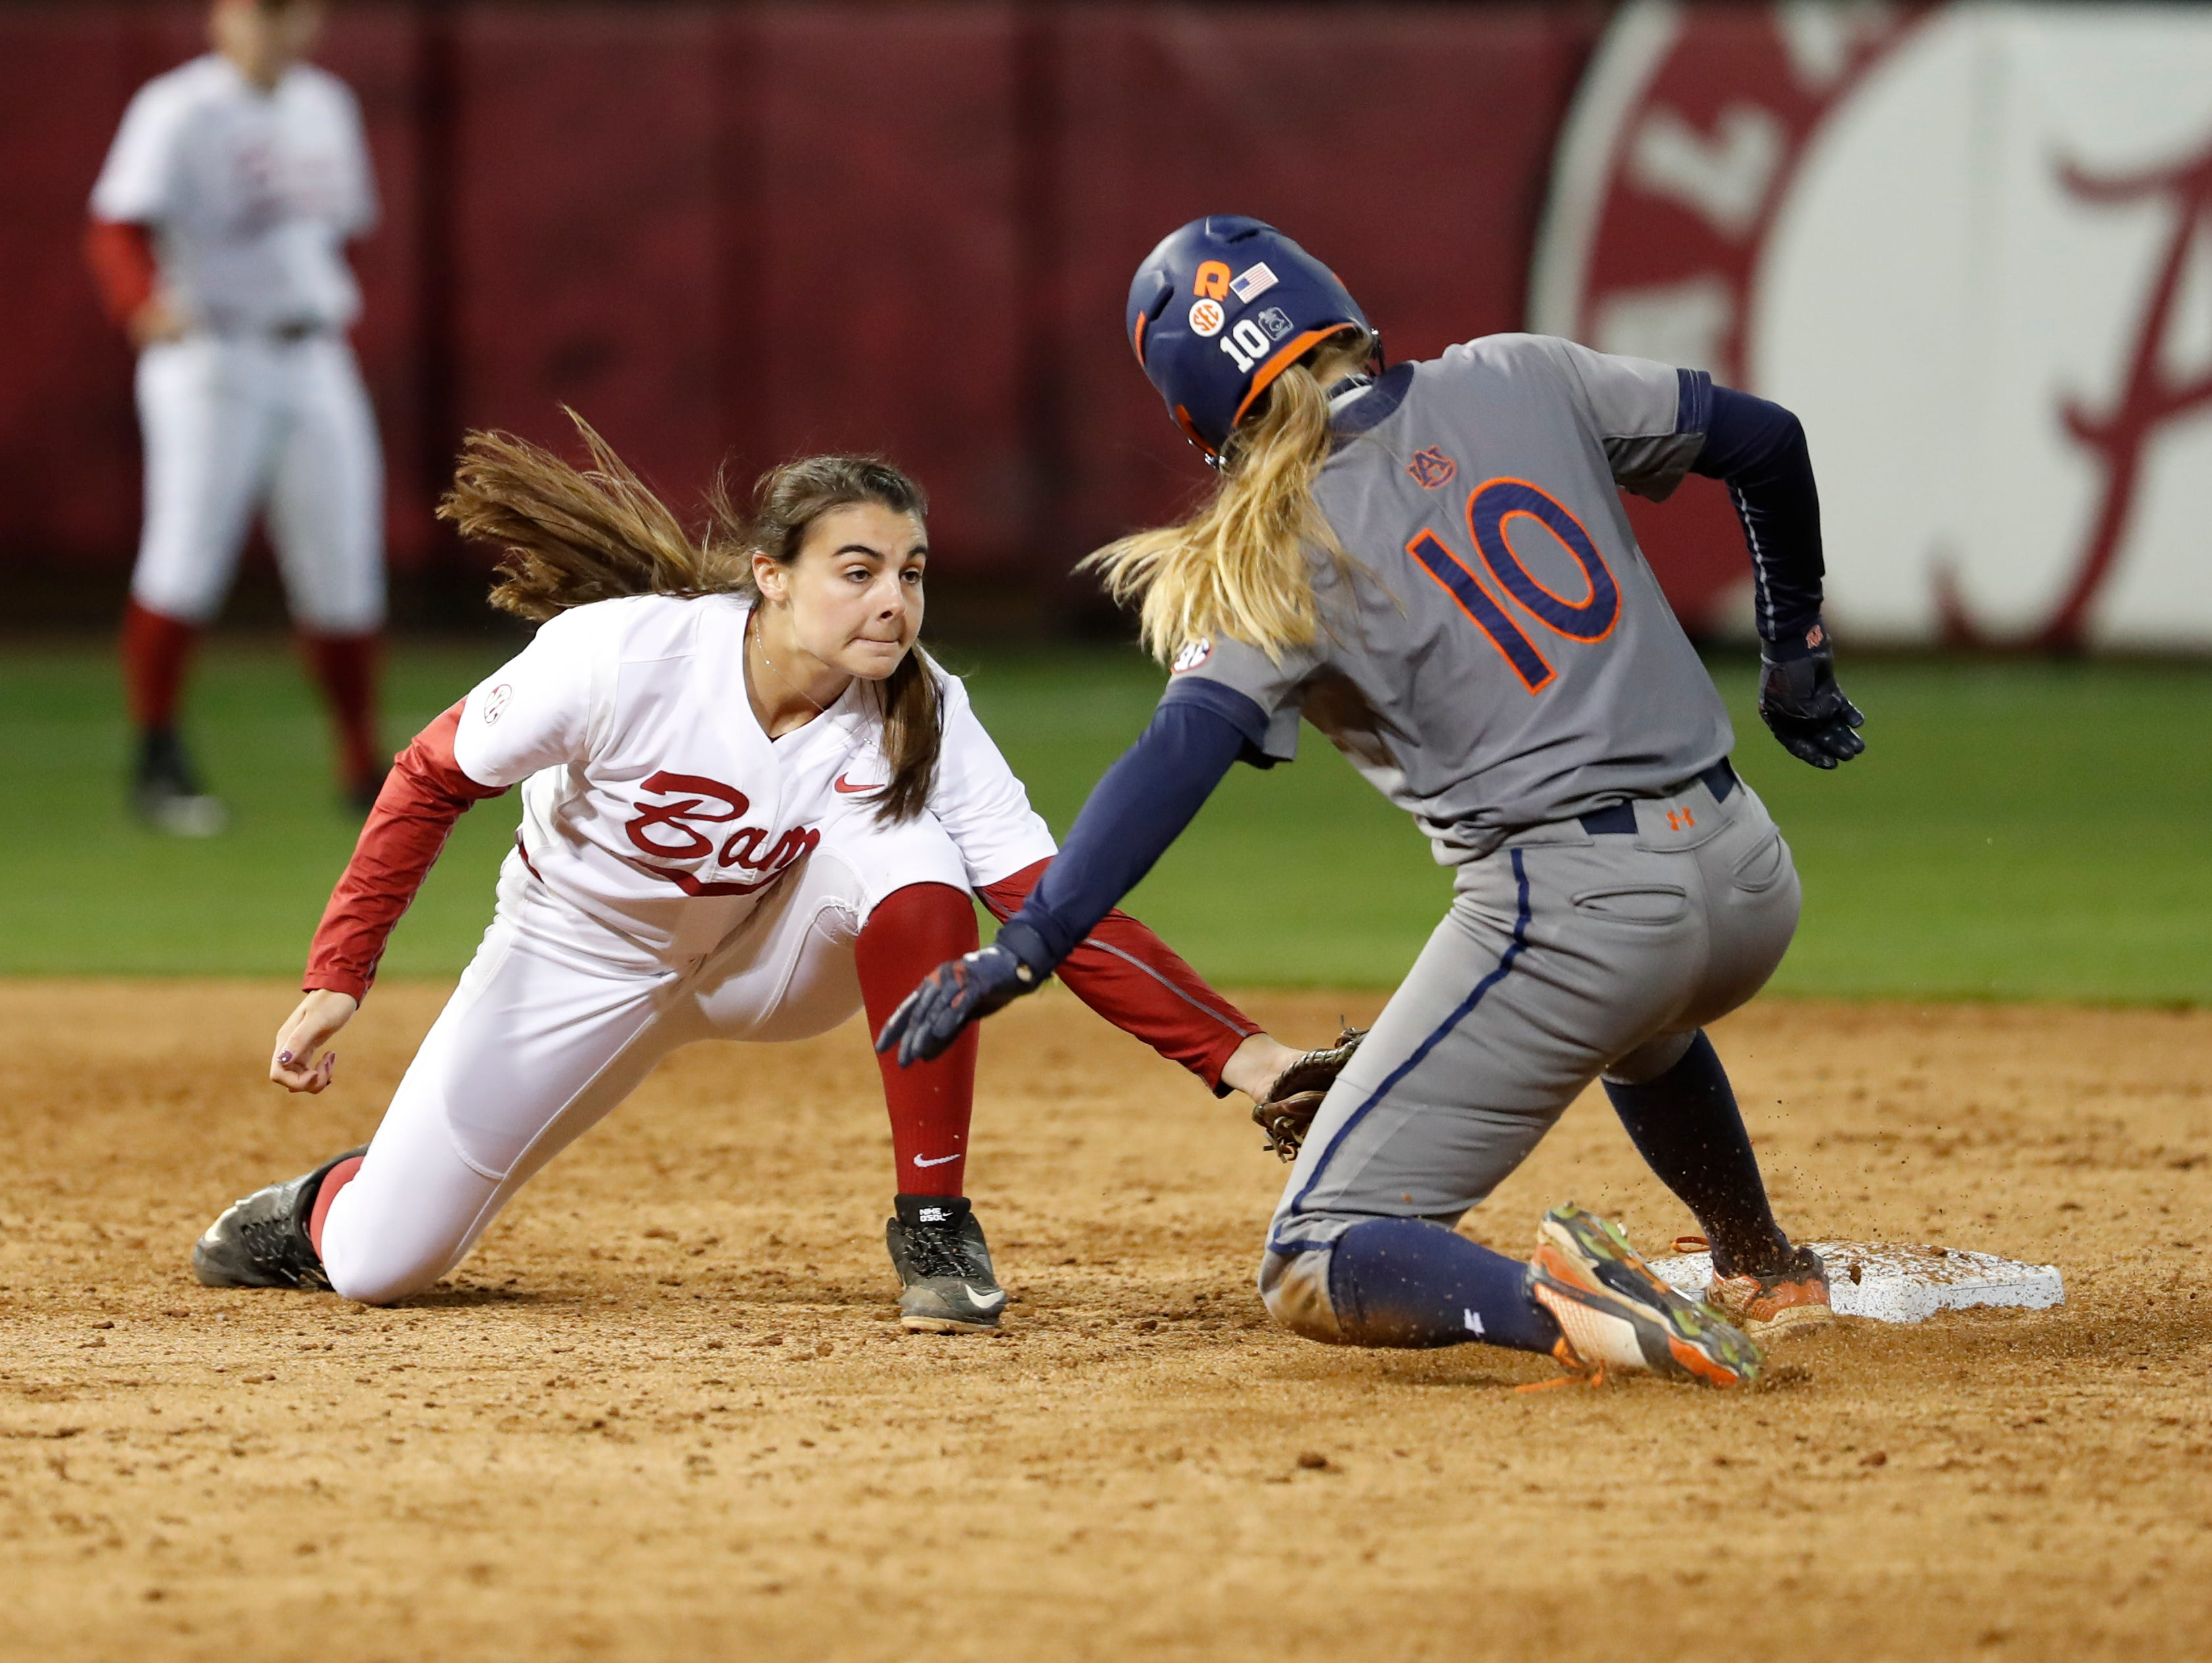 The Auburn and Alabama softball teams played nine innings on May 5 in Tuscaloosa.